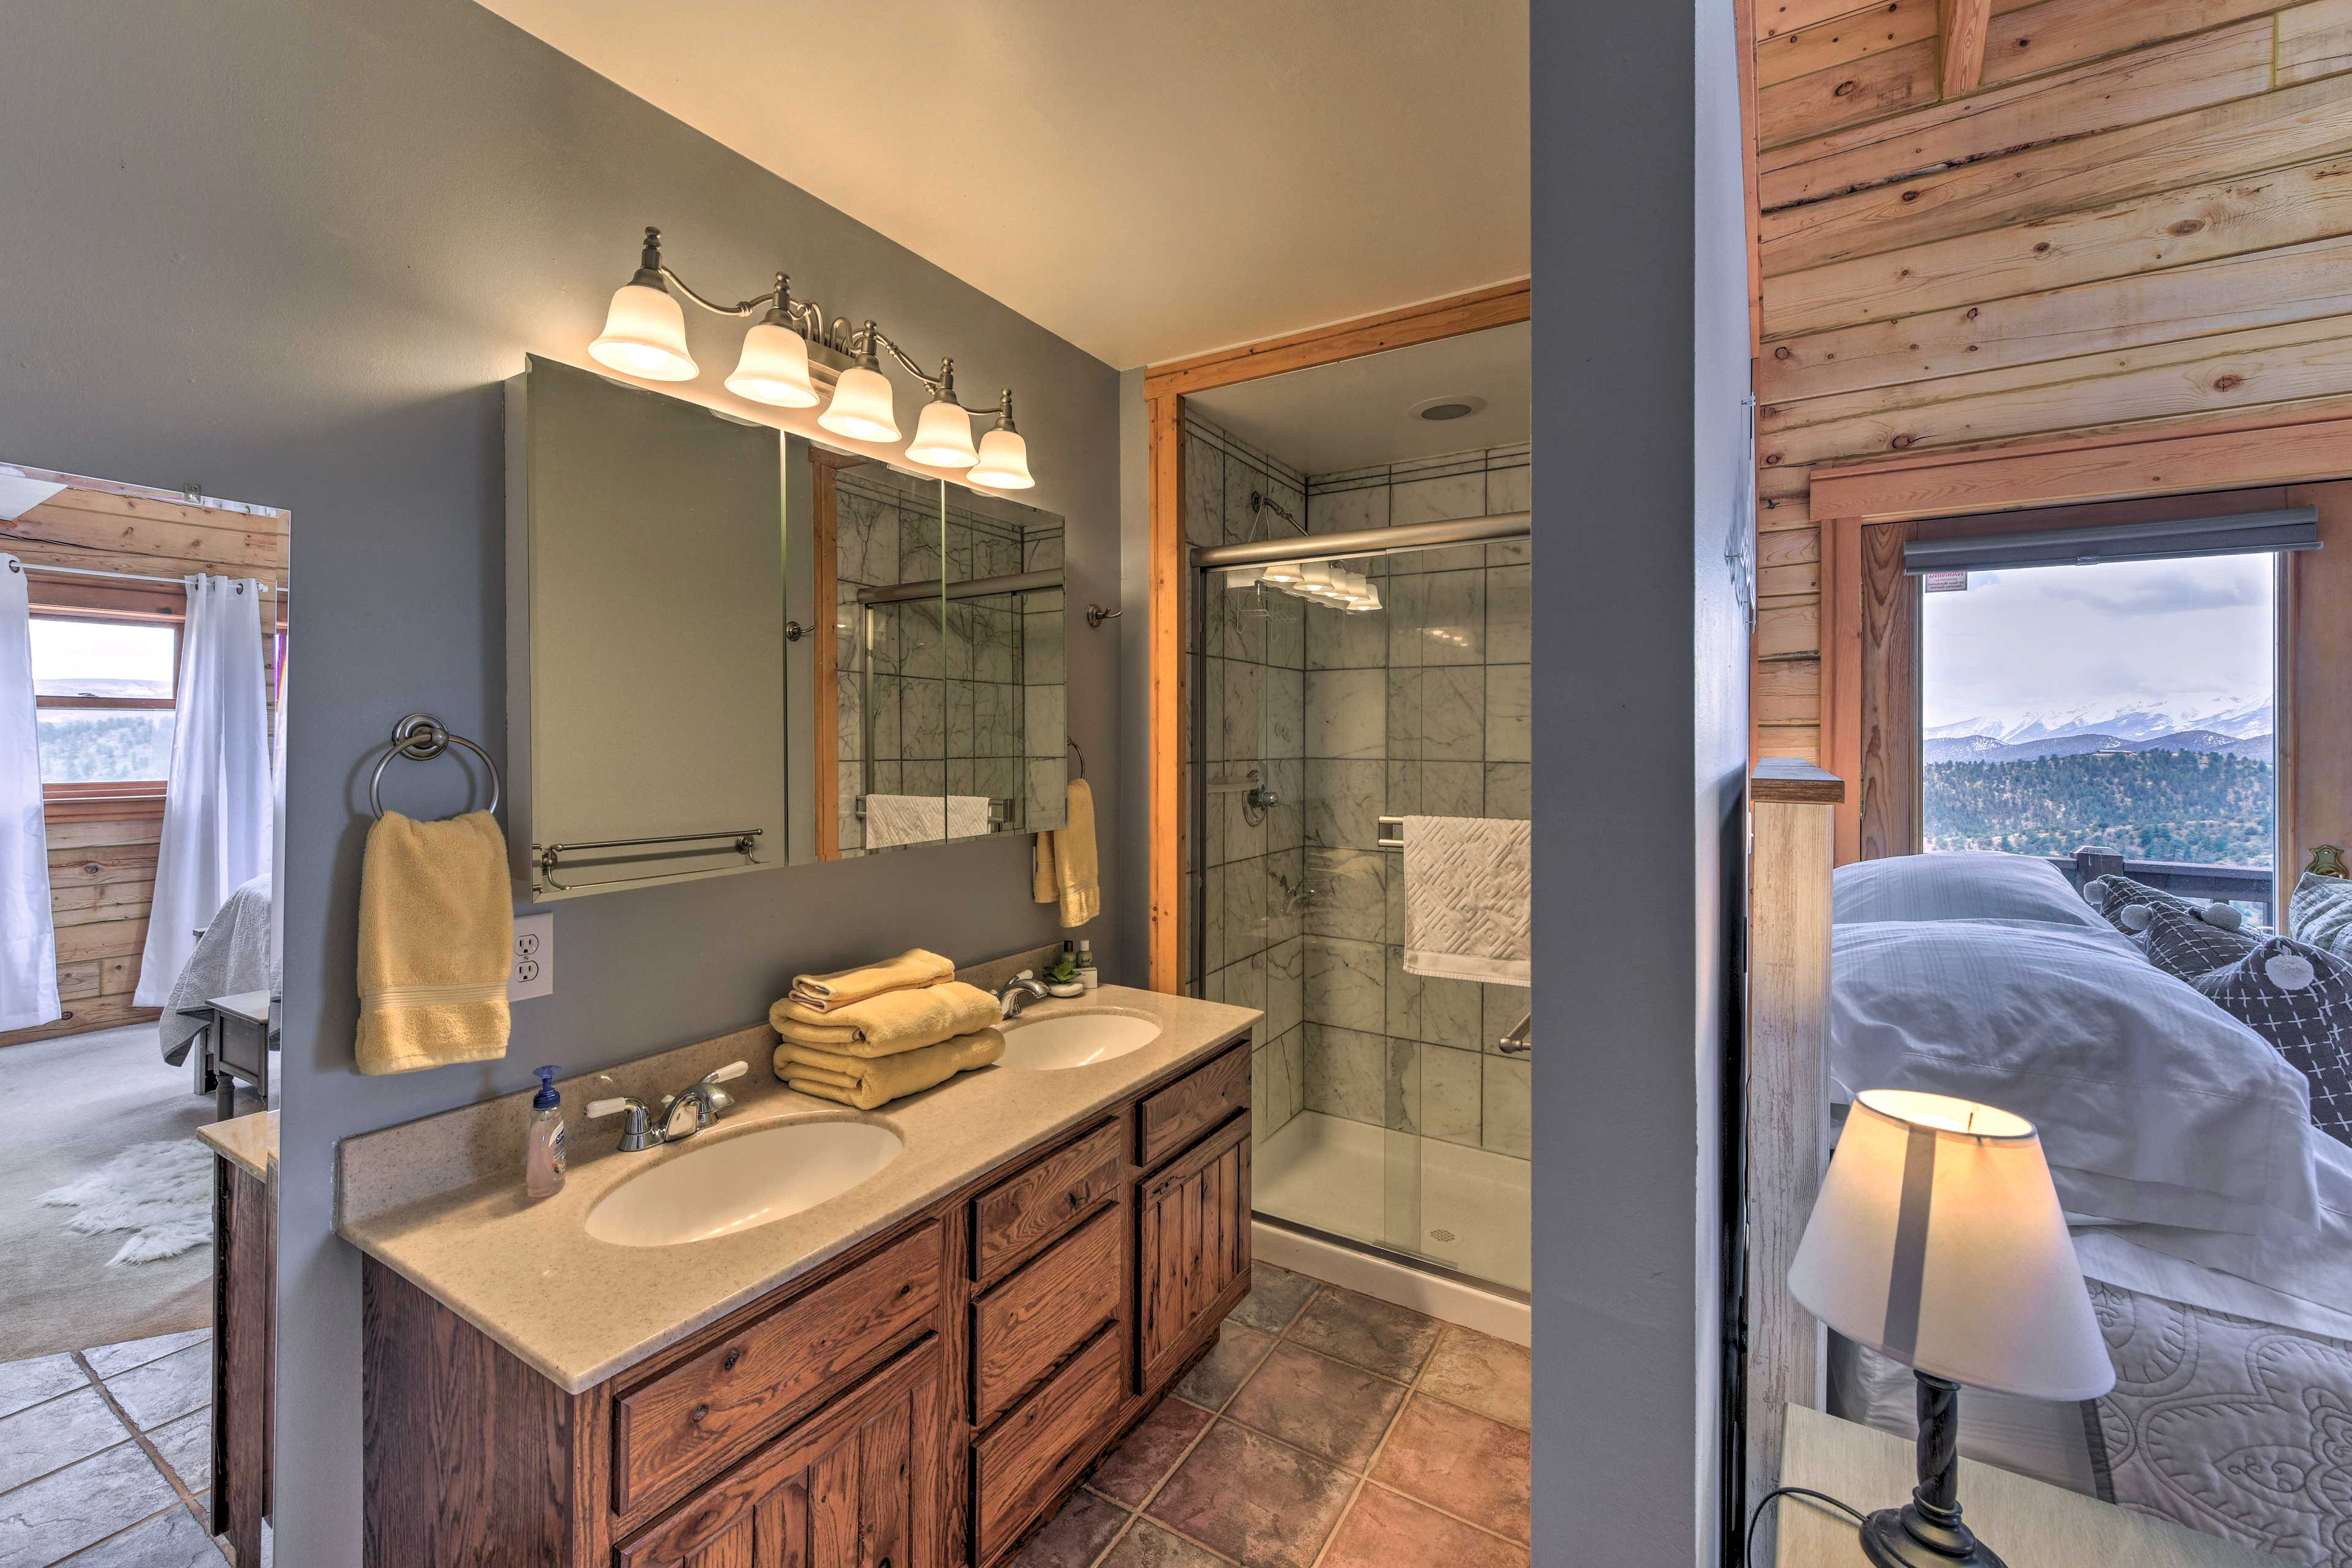 Rinse off the day in the master en-suite bathroom.